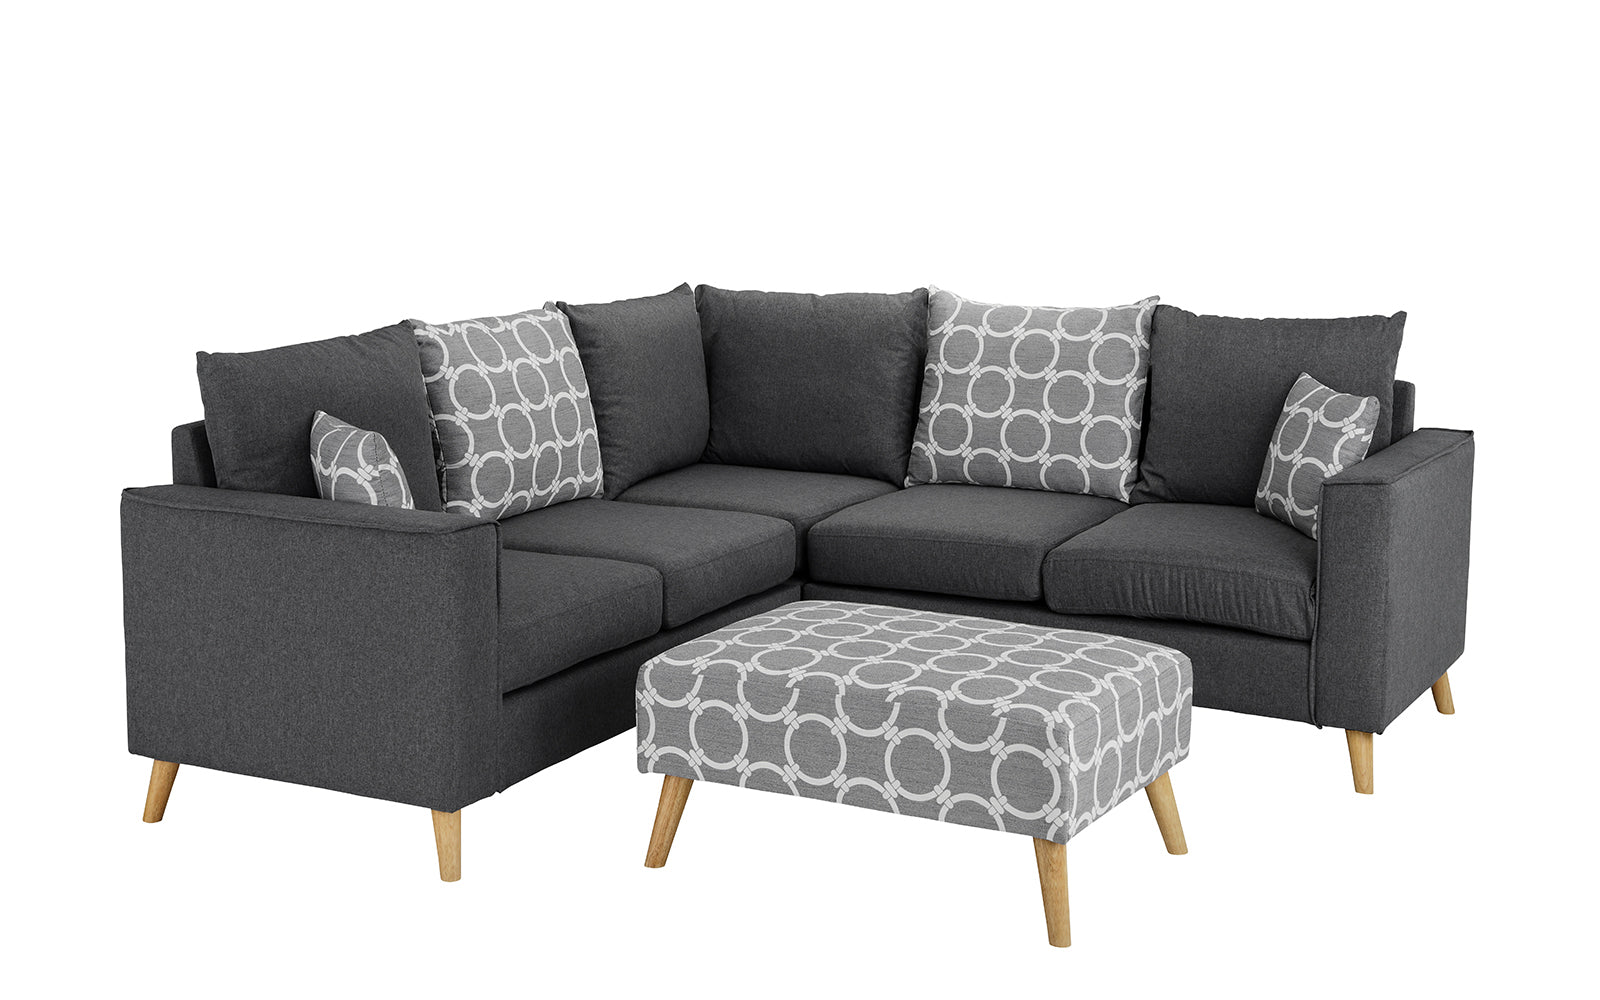 Fabric Sectional Sofa Ottoman Image